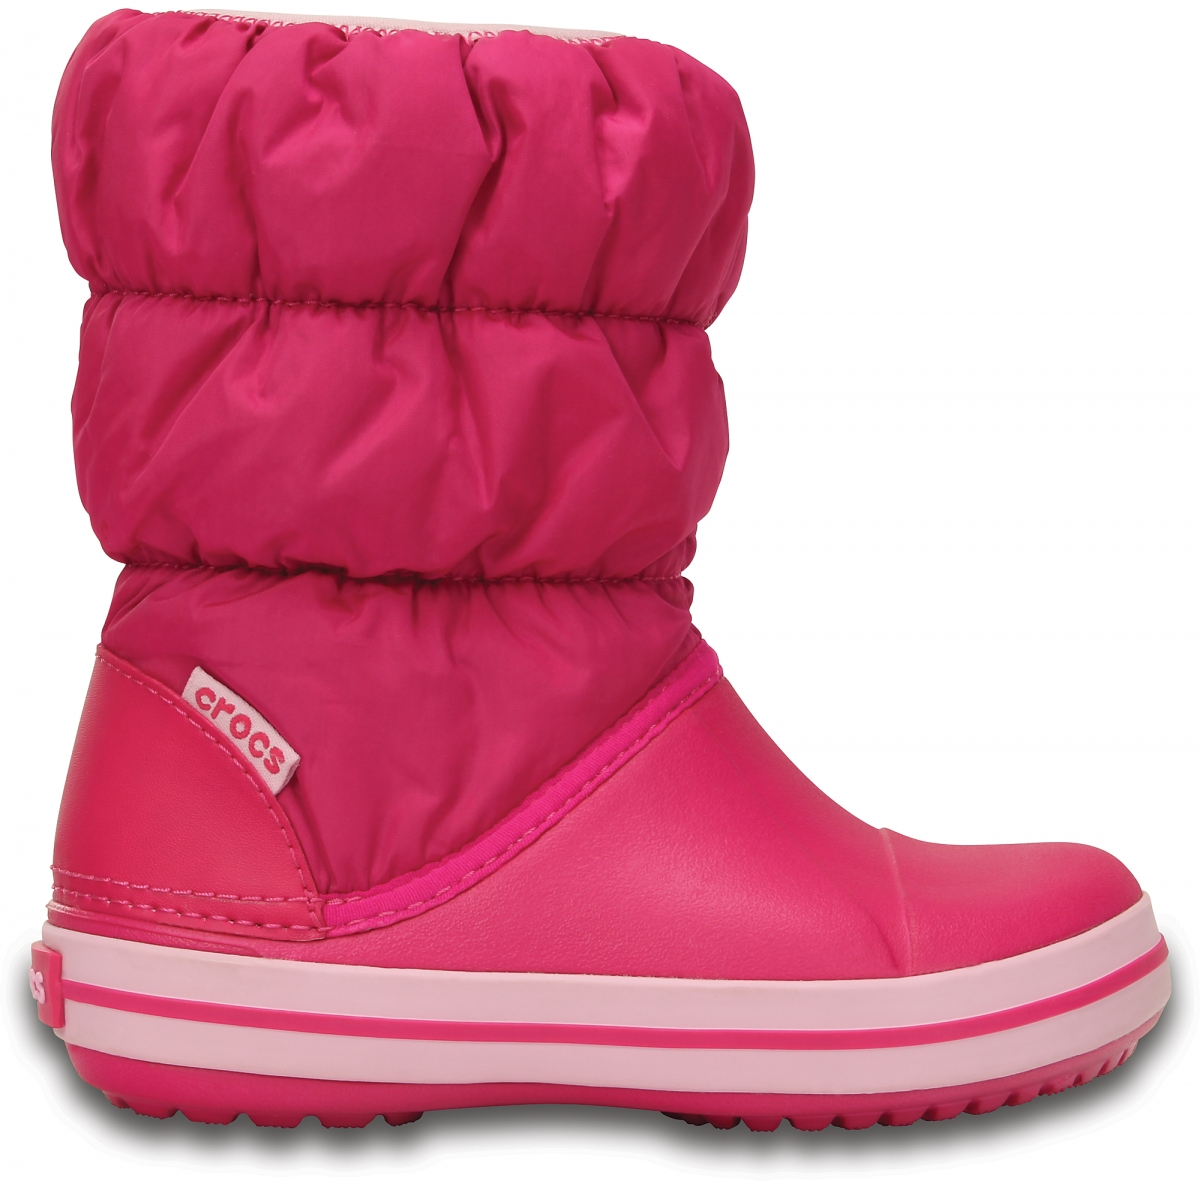 Crocs Winter Puff Boot Kids - Candy Pink, C11 (28-29)